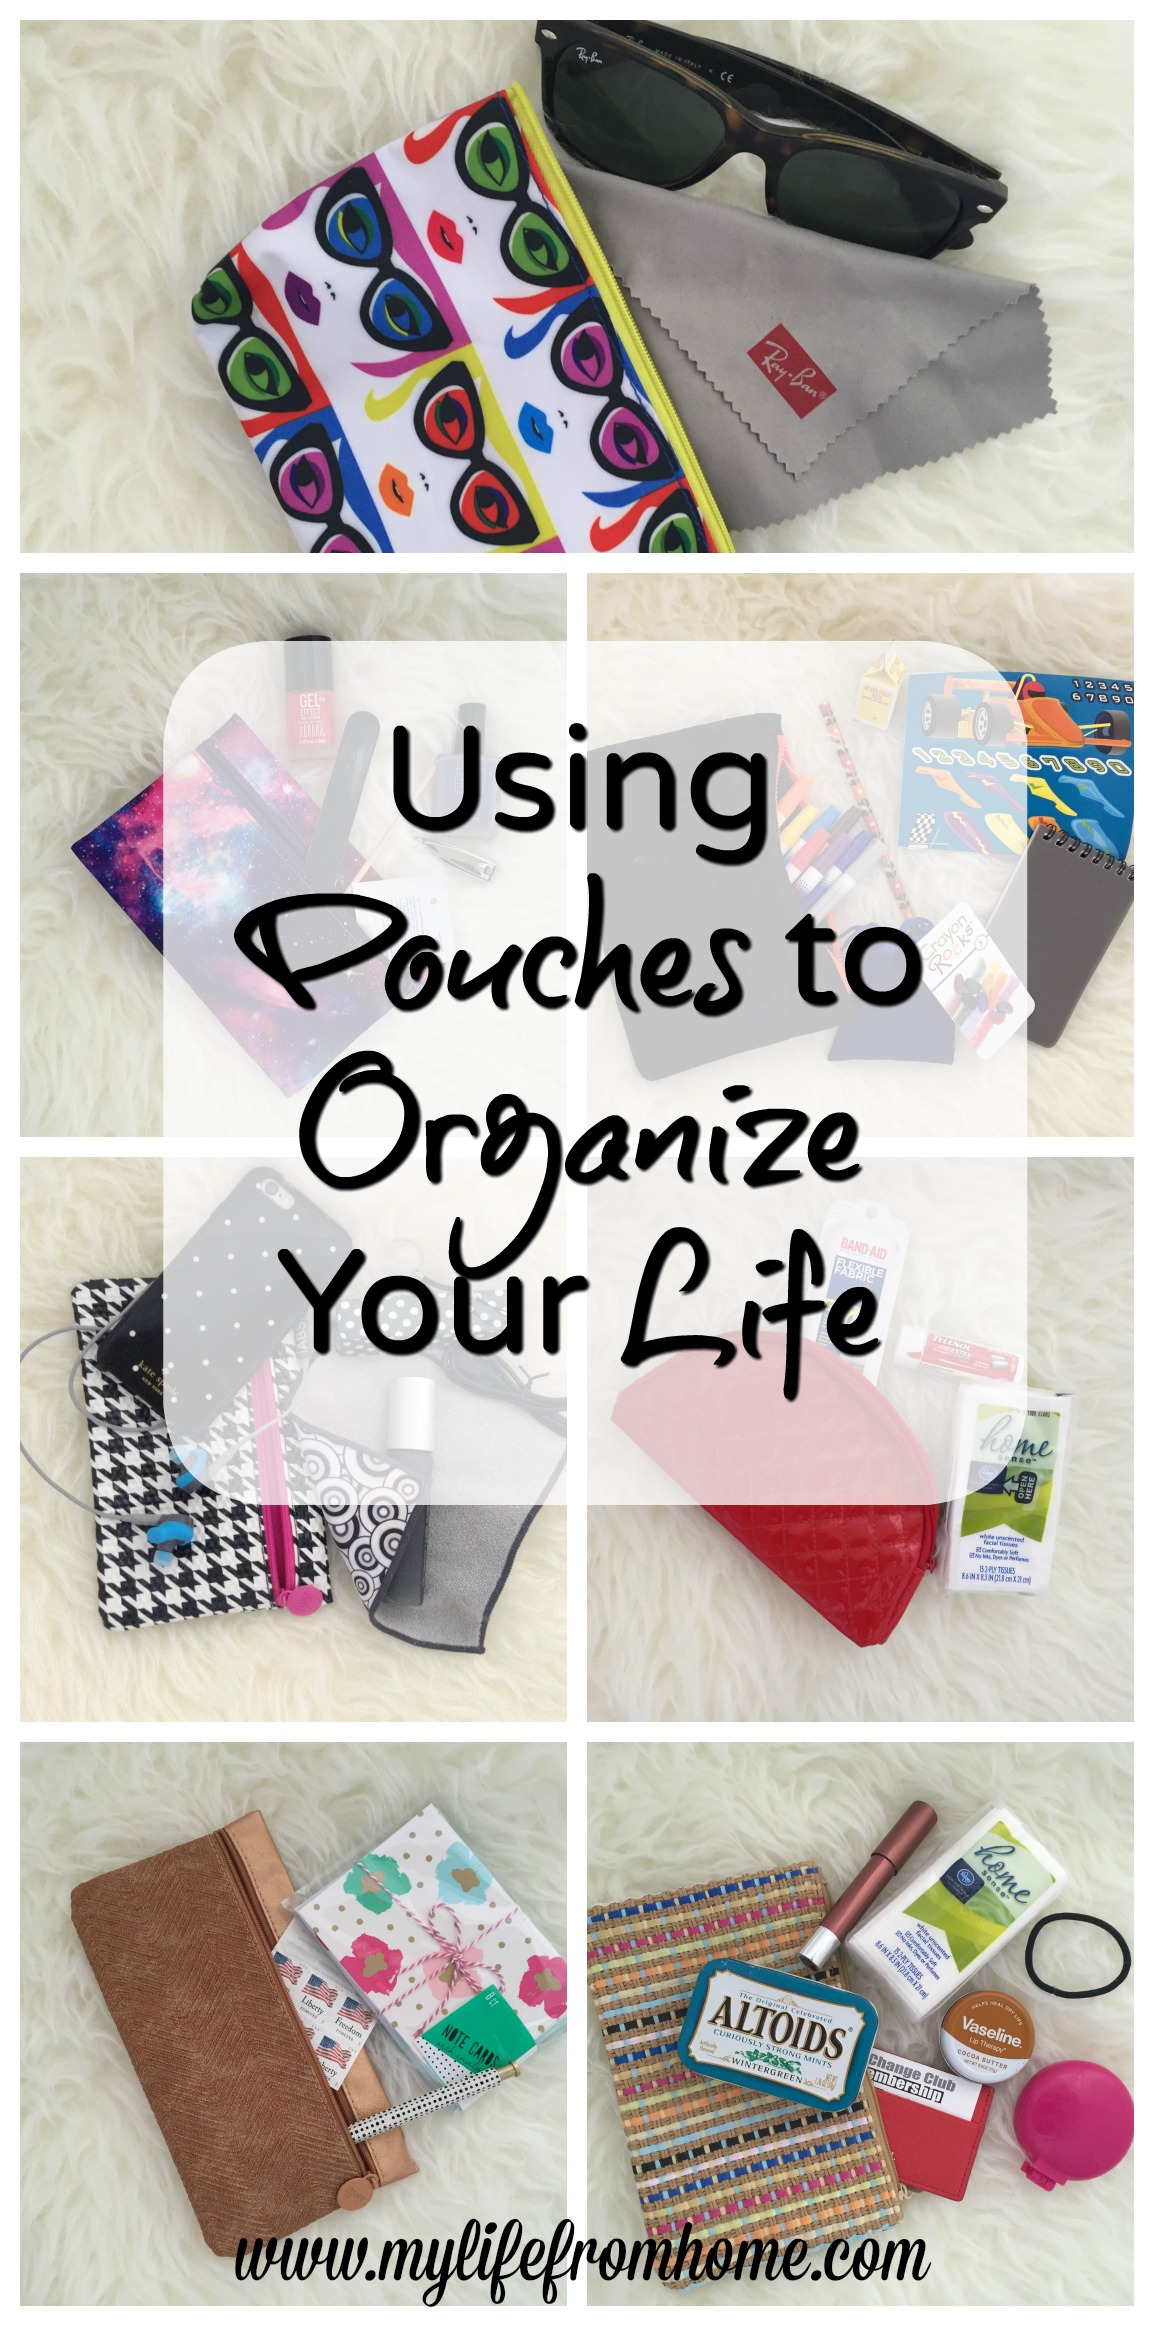 Using Pouches to Organize Your Life by www.mylifefromhome.com